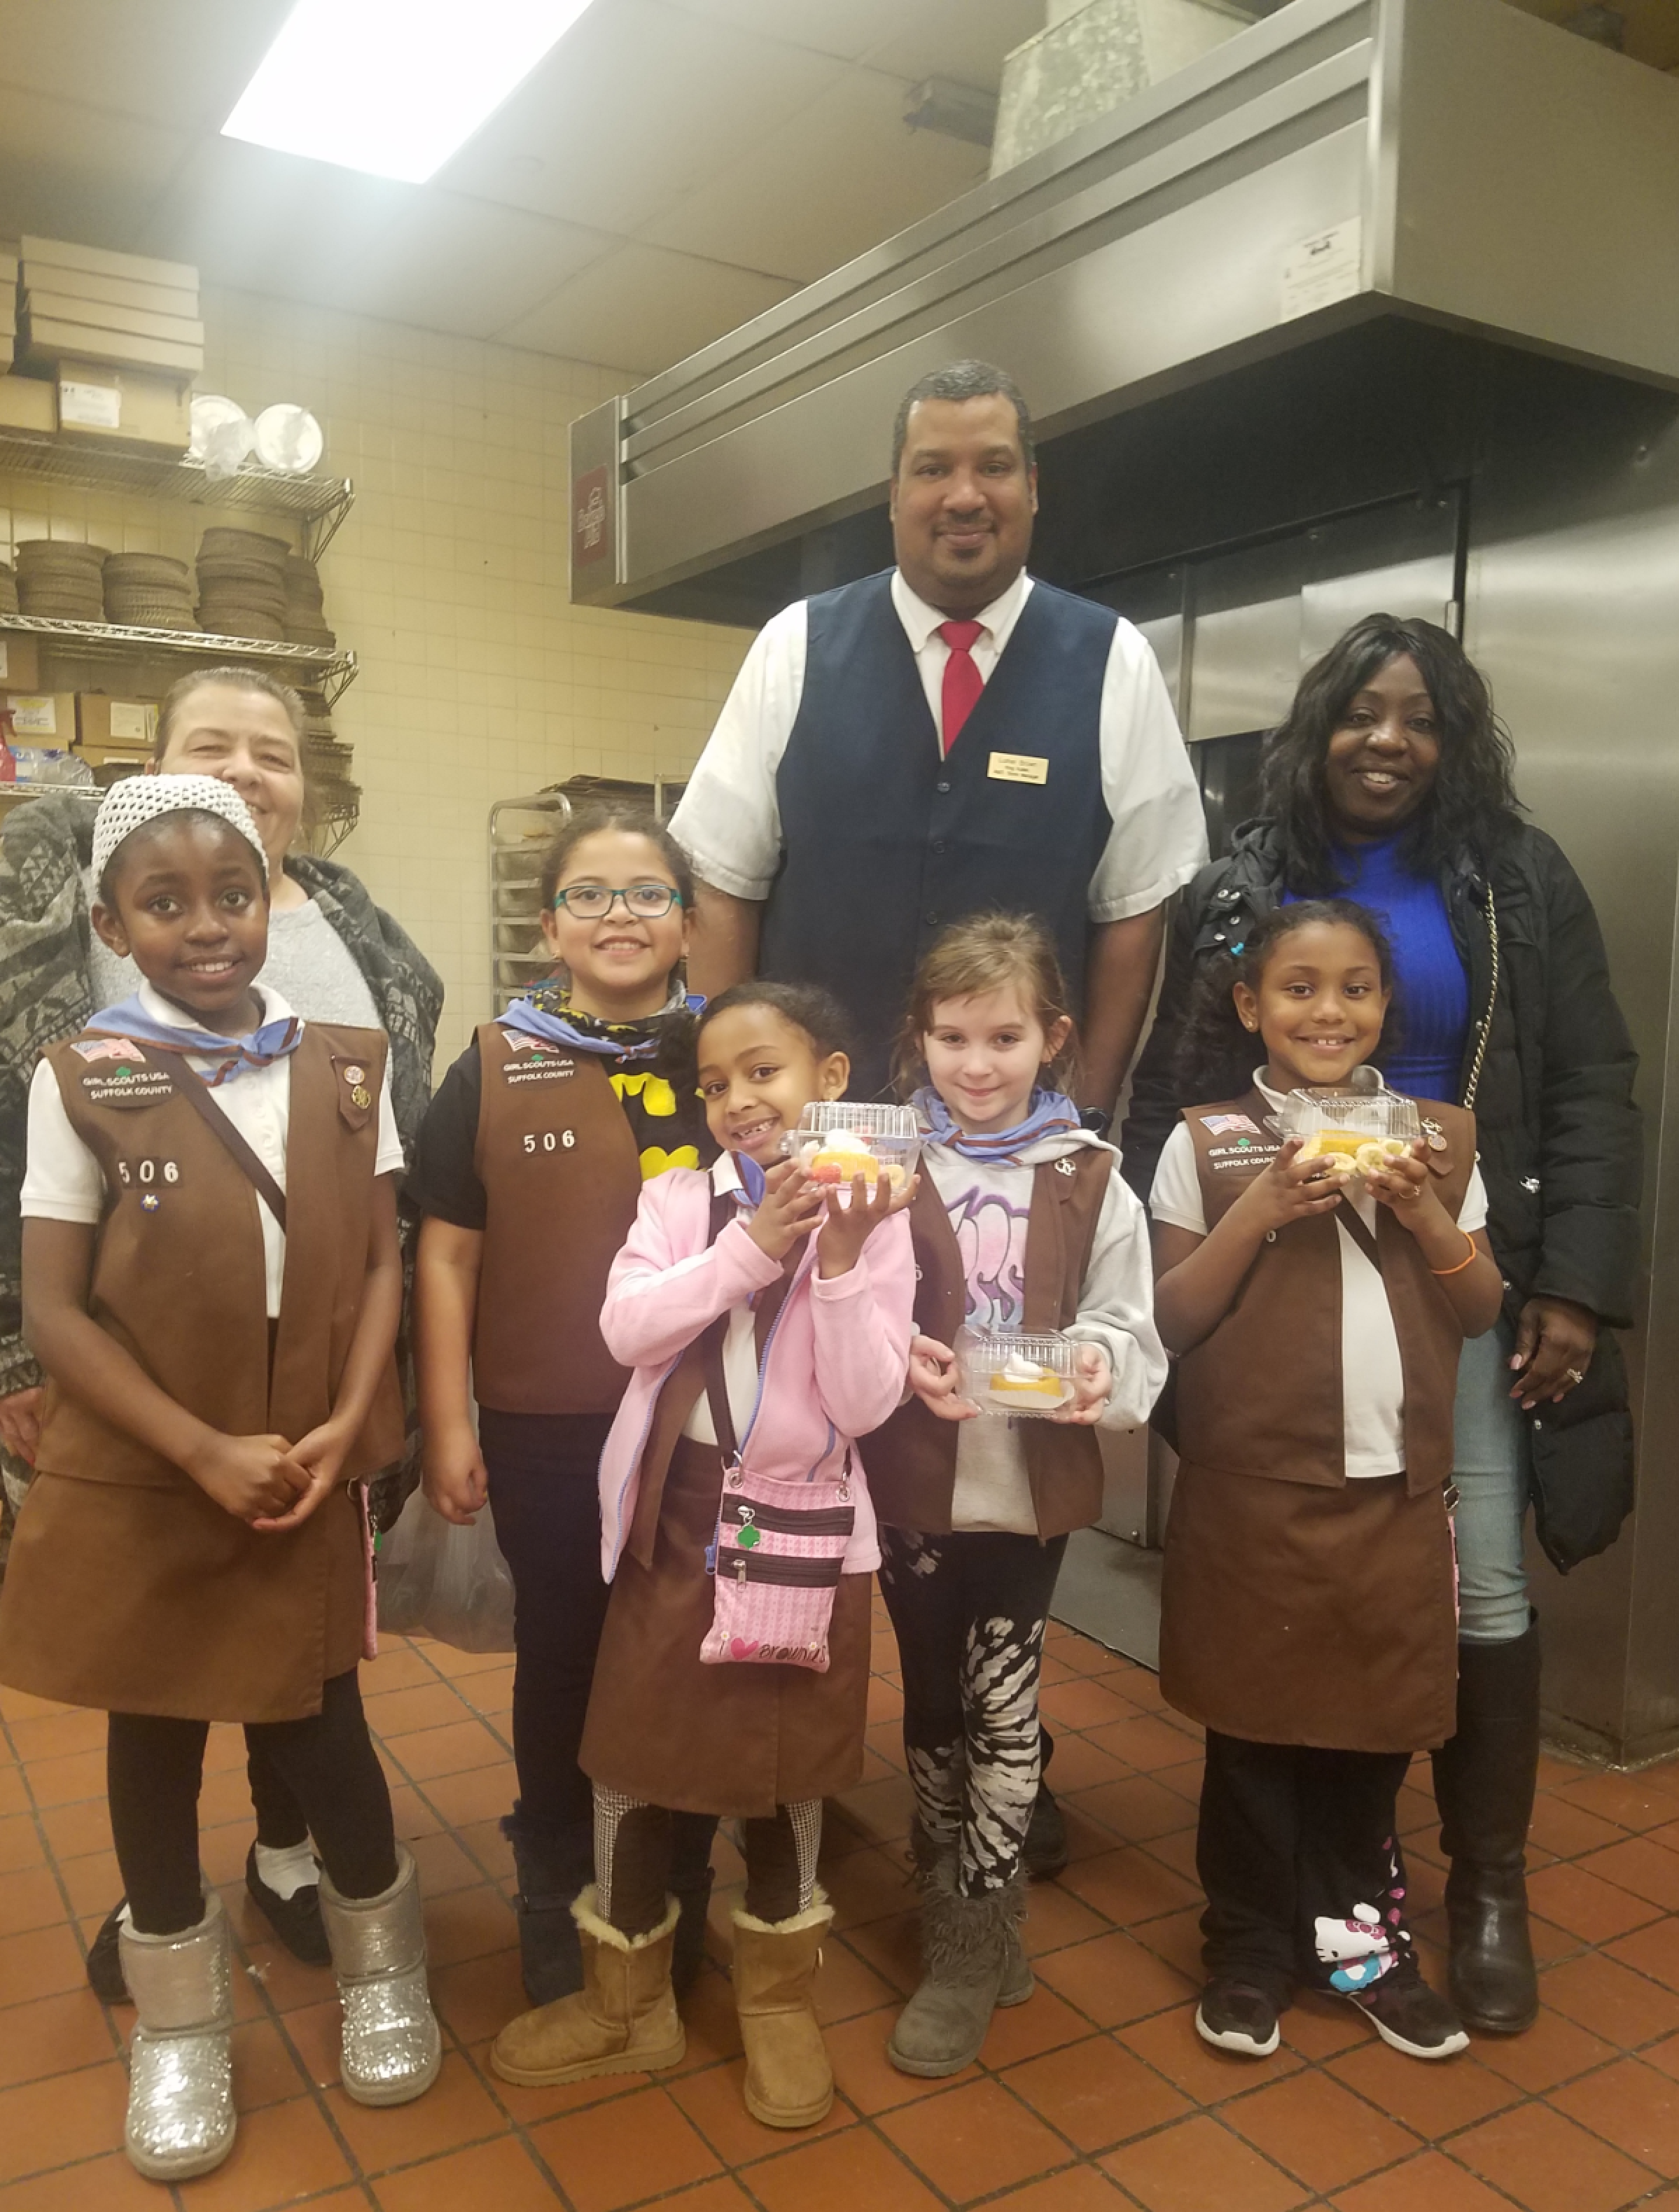 Sheryl Coleman pictured with a group of Girl Scouts